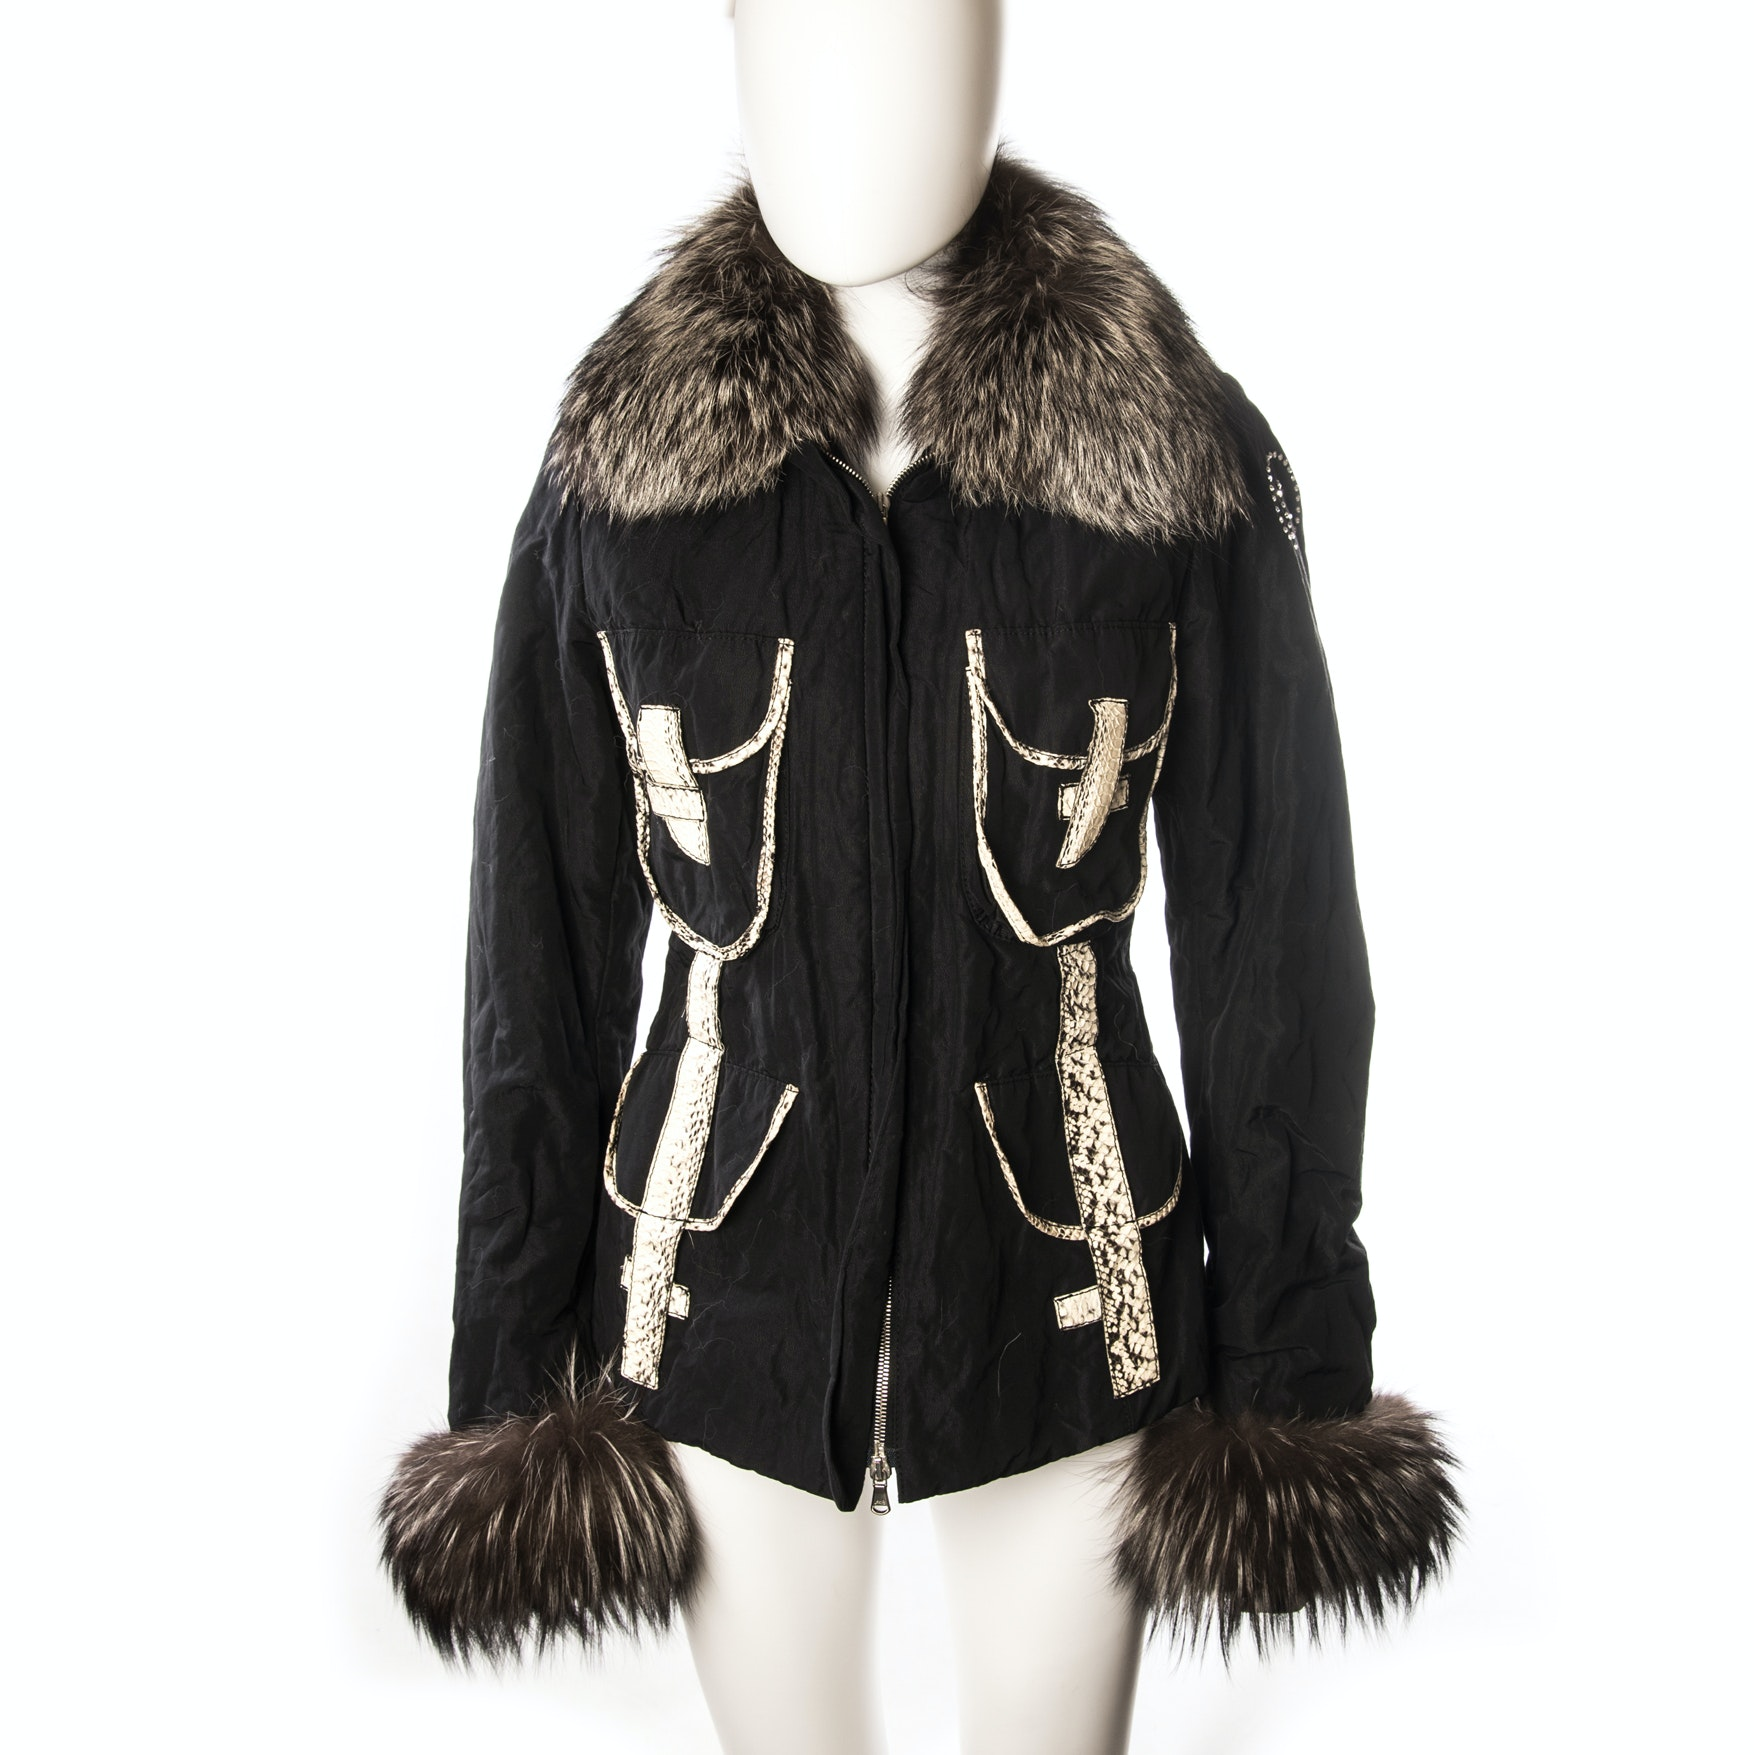 Rossi Raccoon Fur and Snakeskin Printed Leather Accented Jacket